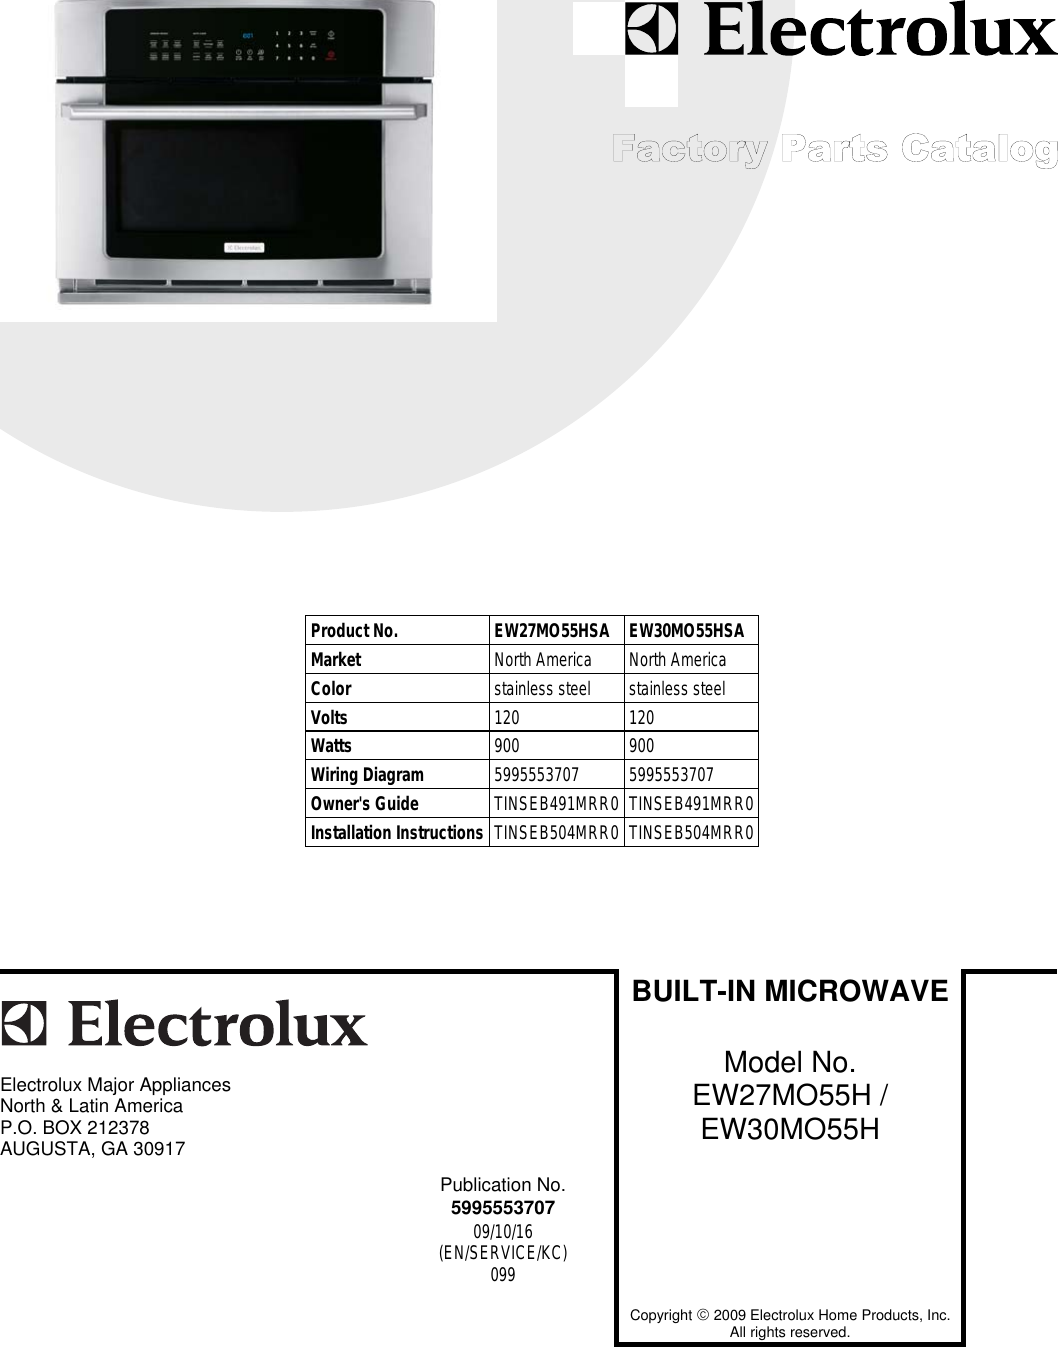 Electrolux Ew27mo55hsa Users Manual To Begin A Parts Catalog Click Wiring Diagram Photos For Help Your Load Contents In The Top Menu Bar